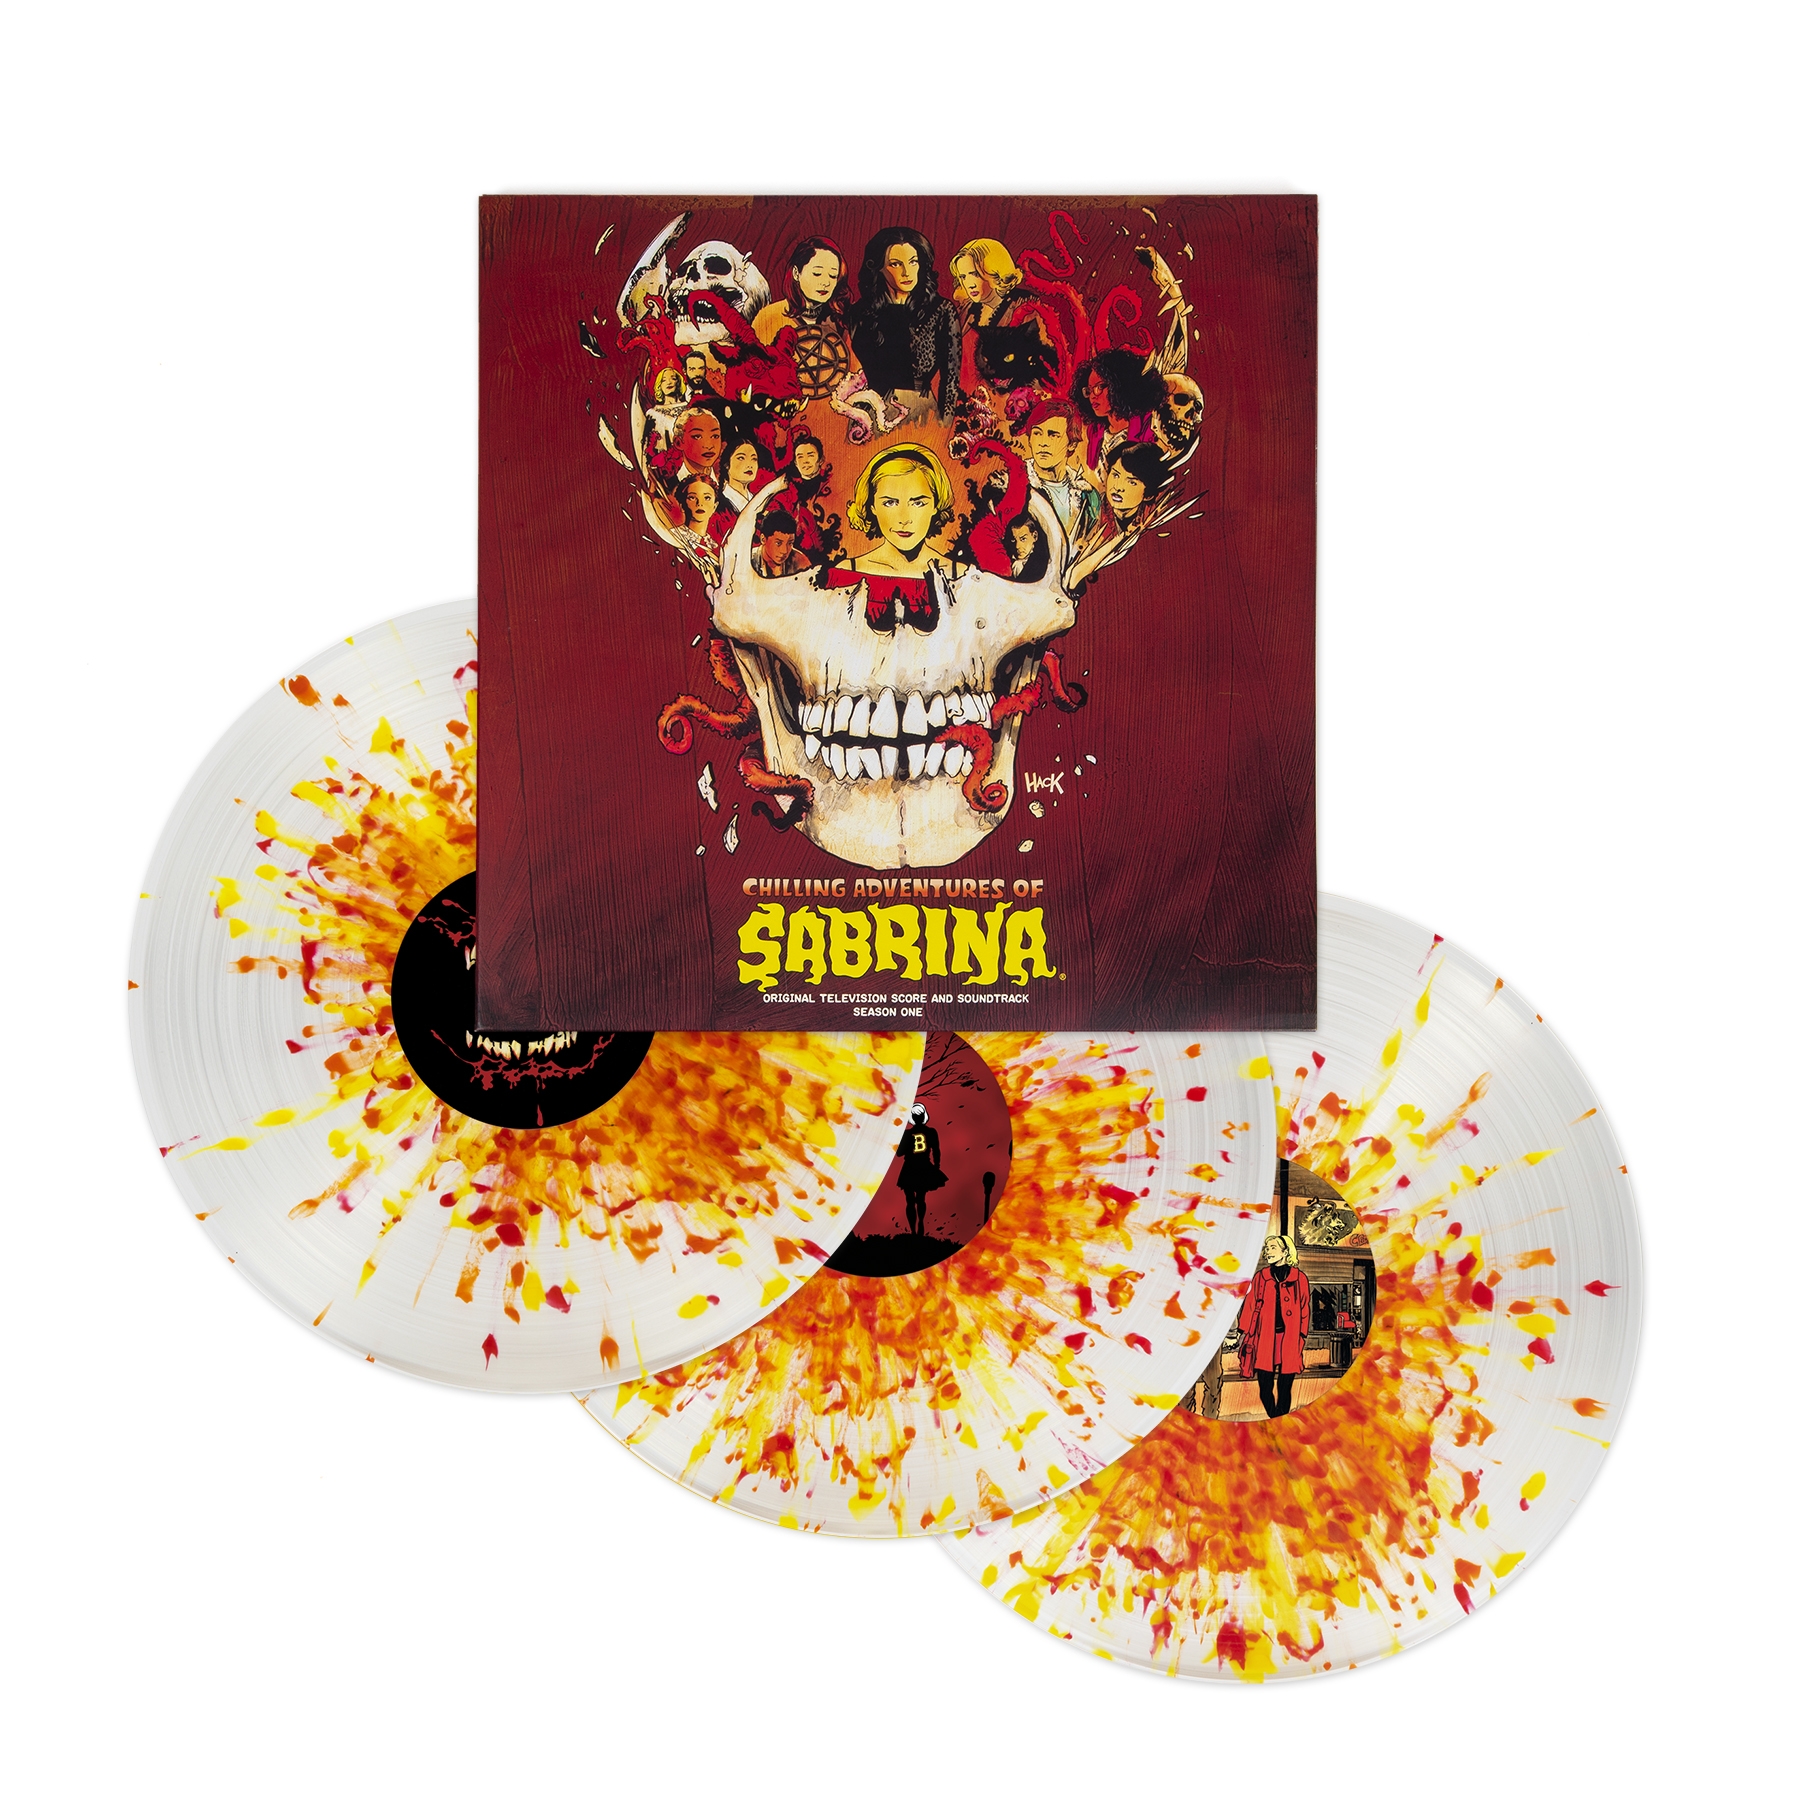 This Stunning CHILLING ADVENTURES OF SABRINA Deluxe 3LP Vinyl Collection is Magic_1